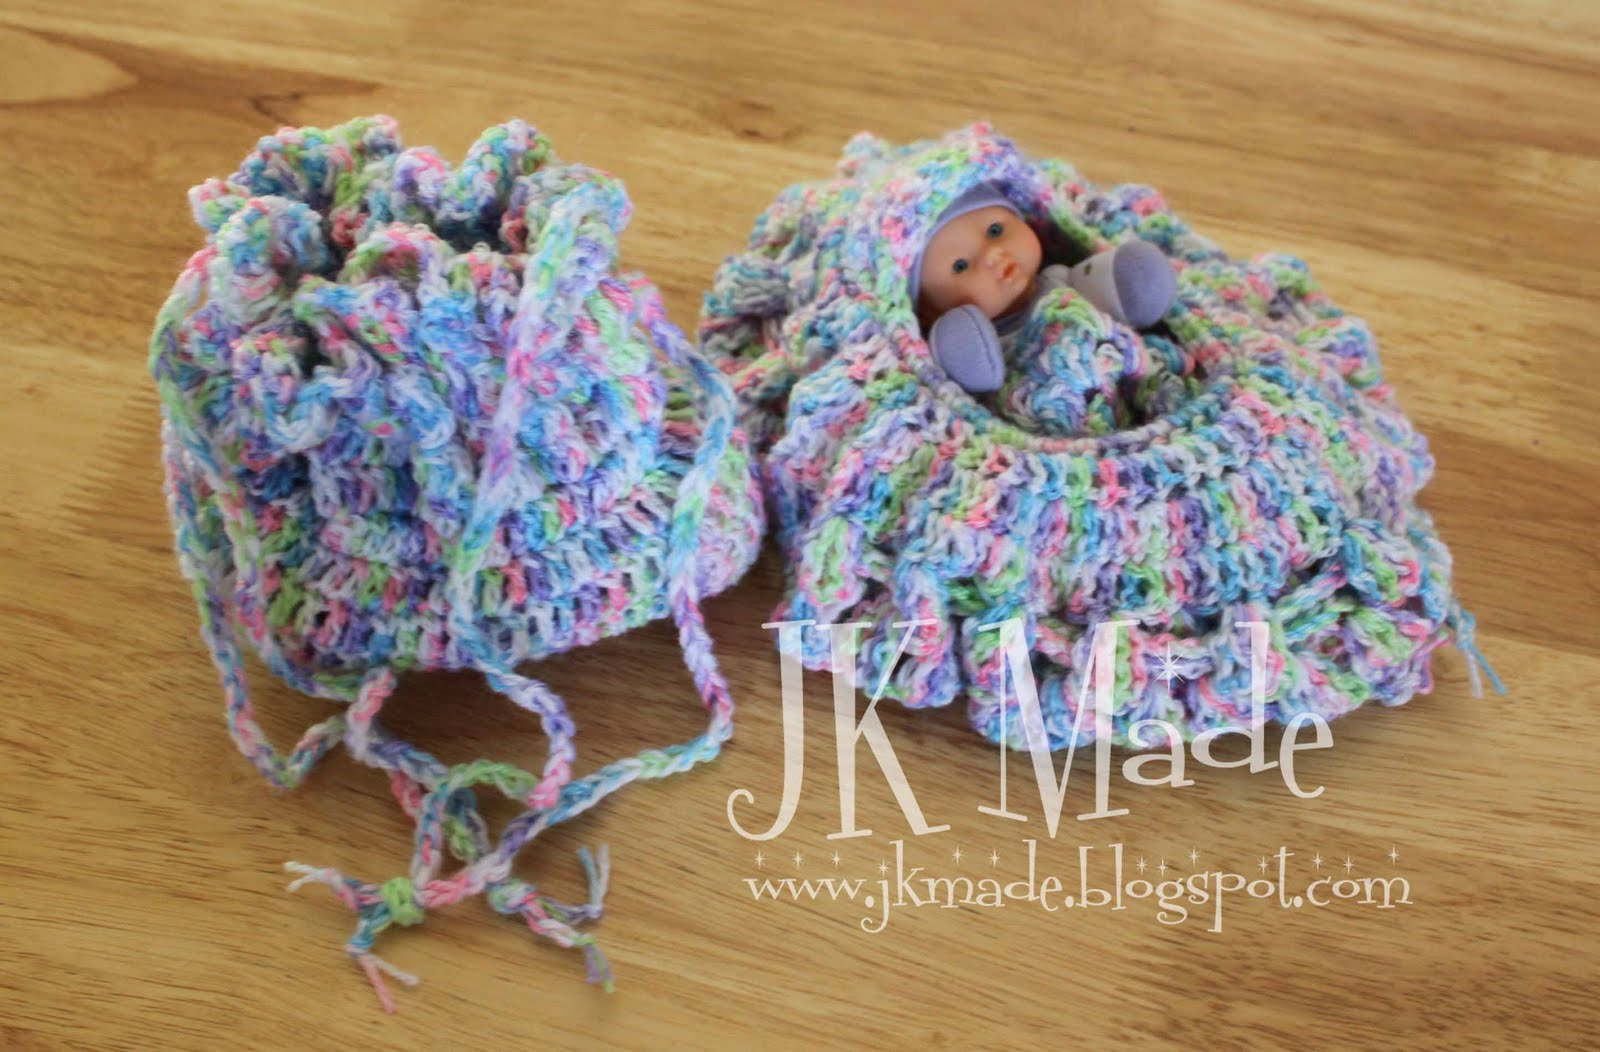 Crochet Baby Purse : Crochet baby bassinet/purse JK Made